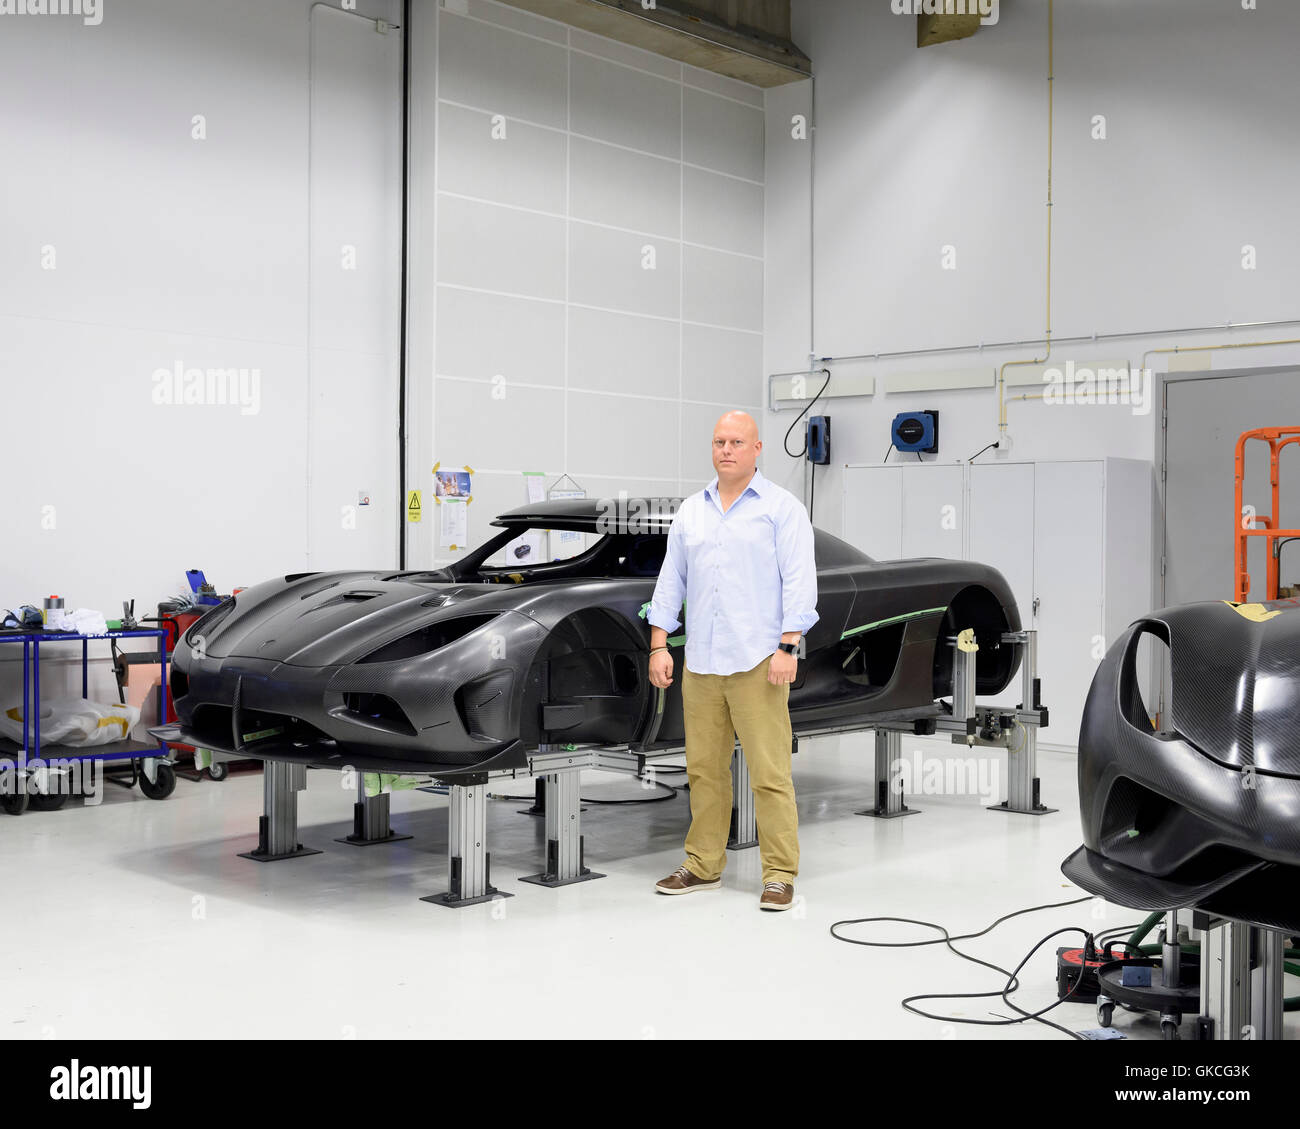 Christian von Koenigsegg standing in front of the shell of what will become one of the fastest cars in the world. Stock Photo